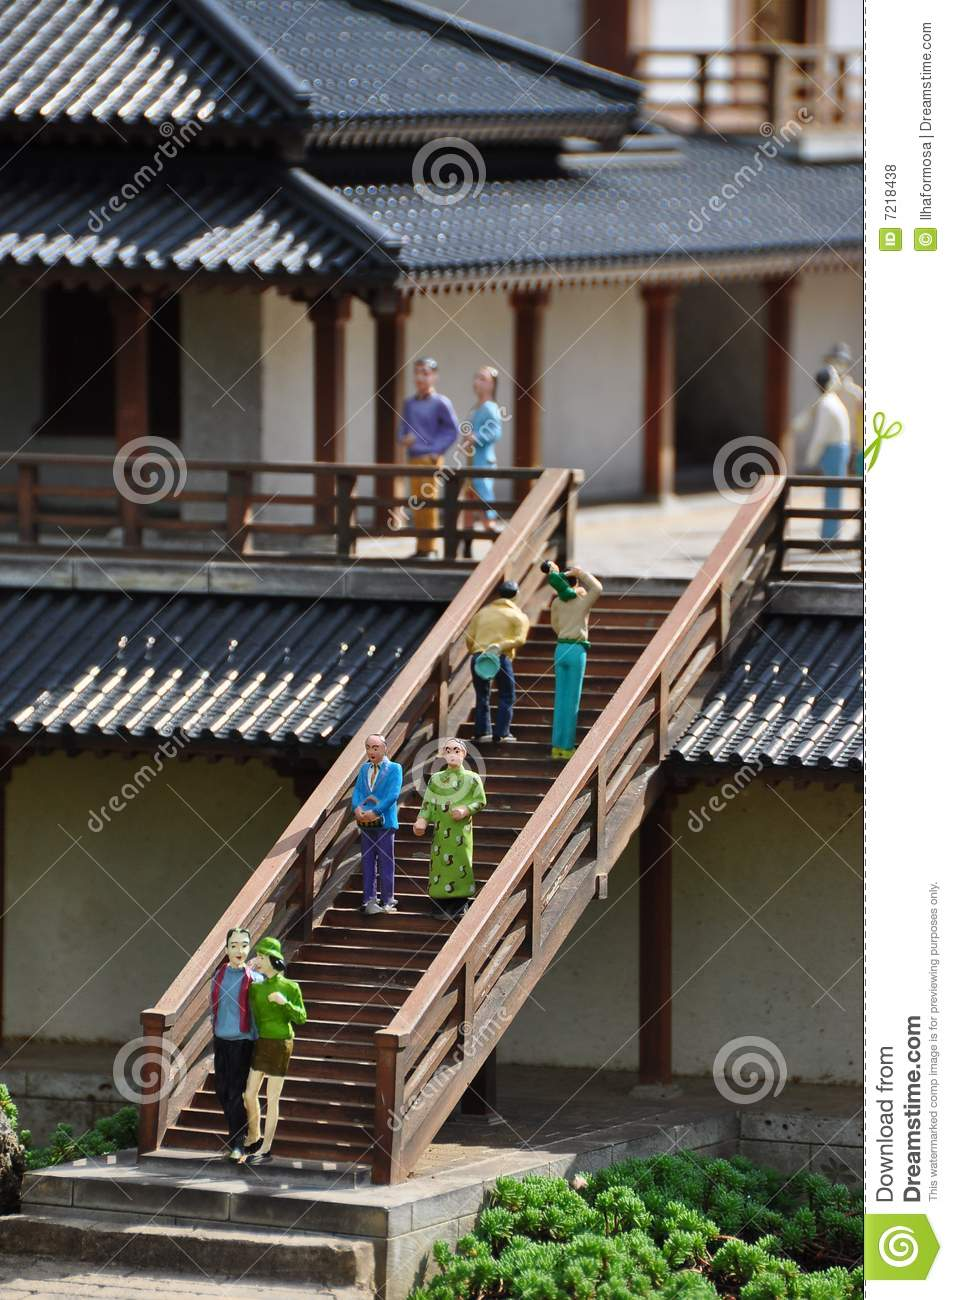 Miniature chinese architecture royalty free stock photos for Miniature architecture